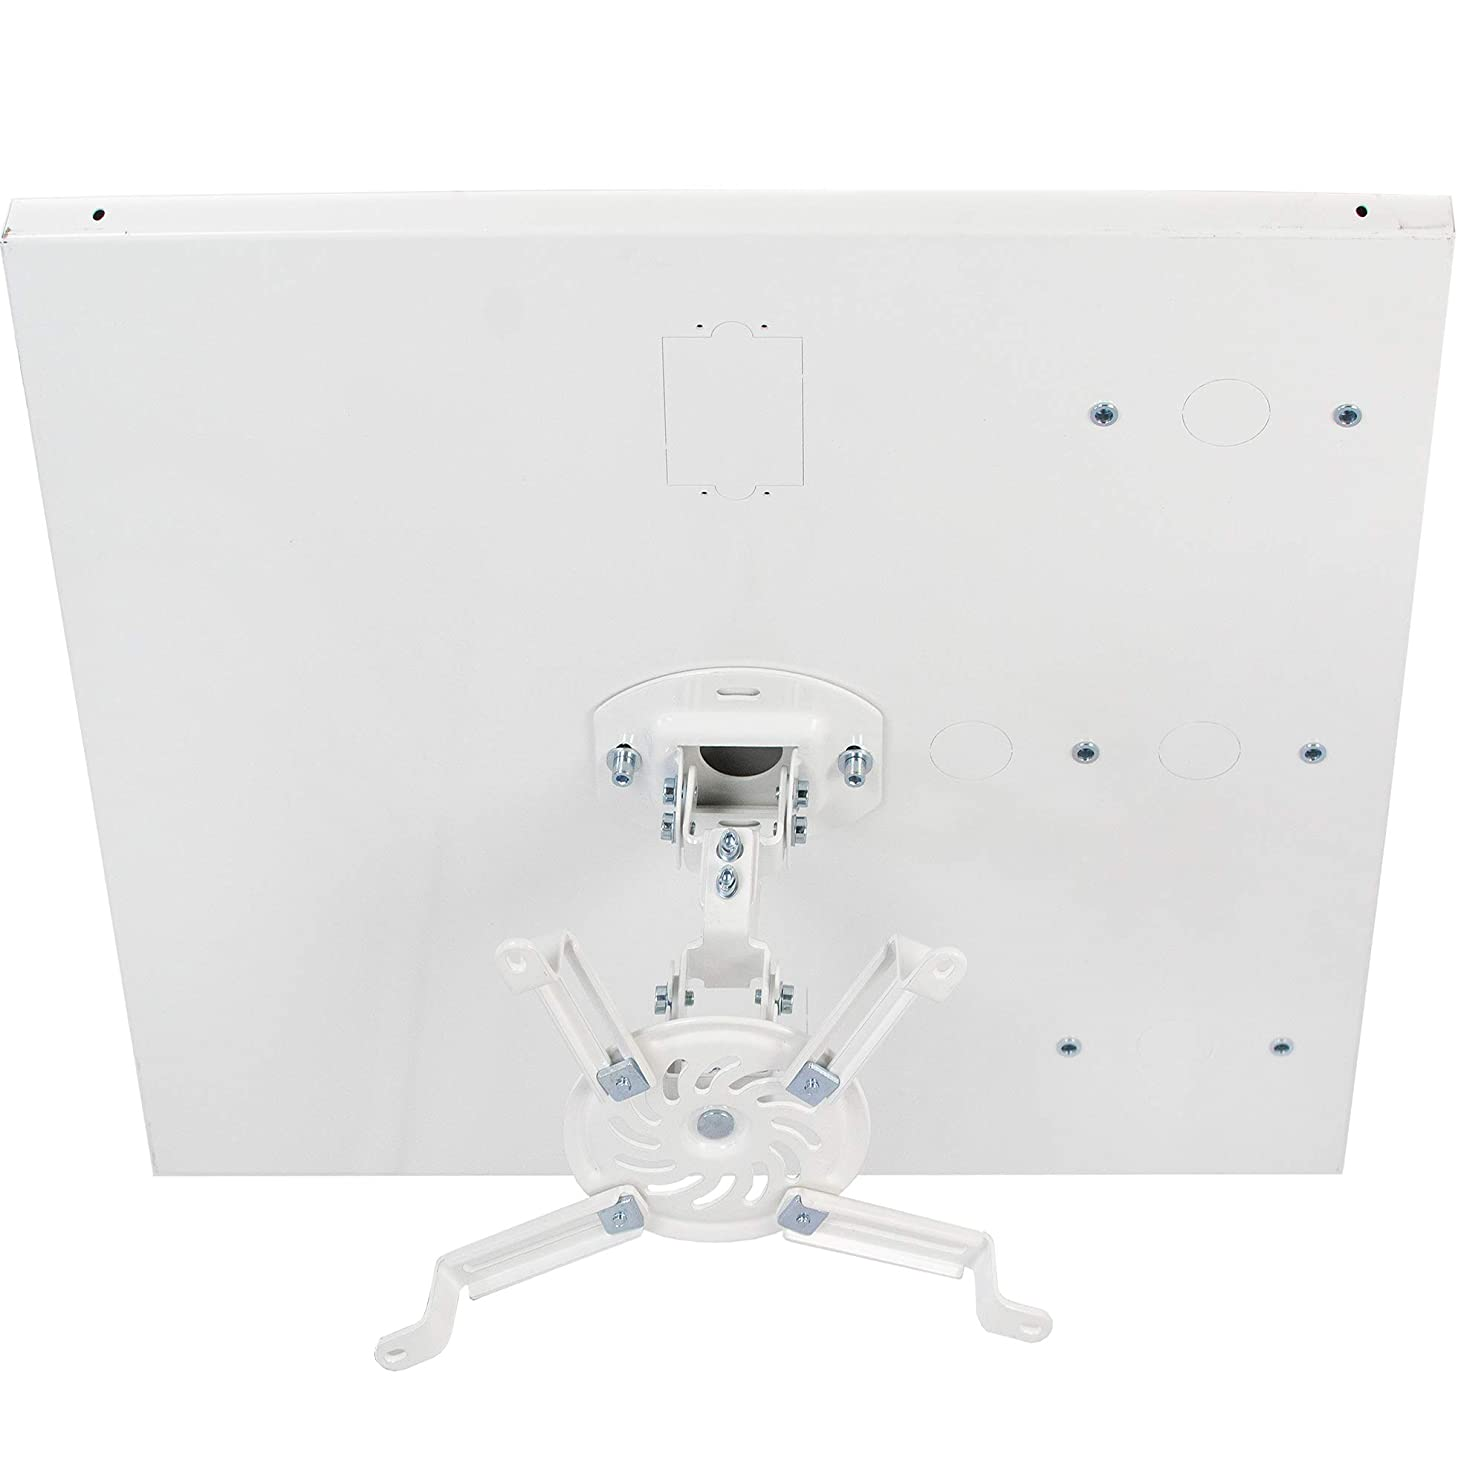 VIVO Universal White Adjustable 2x2 ft Drop Ceiling Projector Mount   Suspended Drop-in Ceiling Projection Mounting Kit (MOUNT-VP07DP)